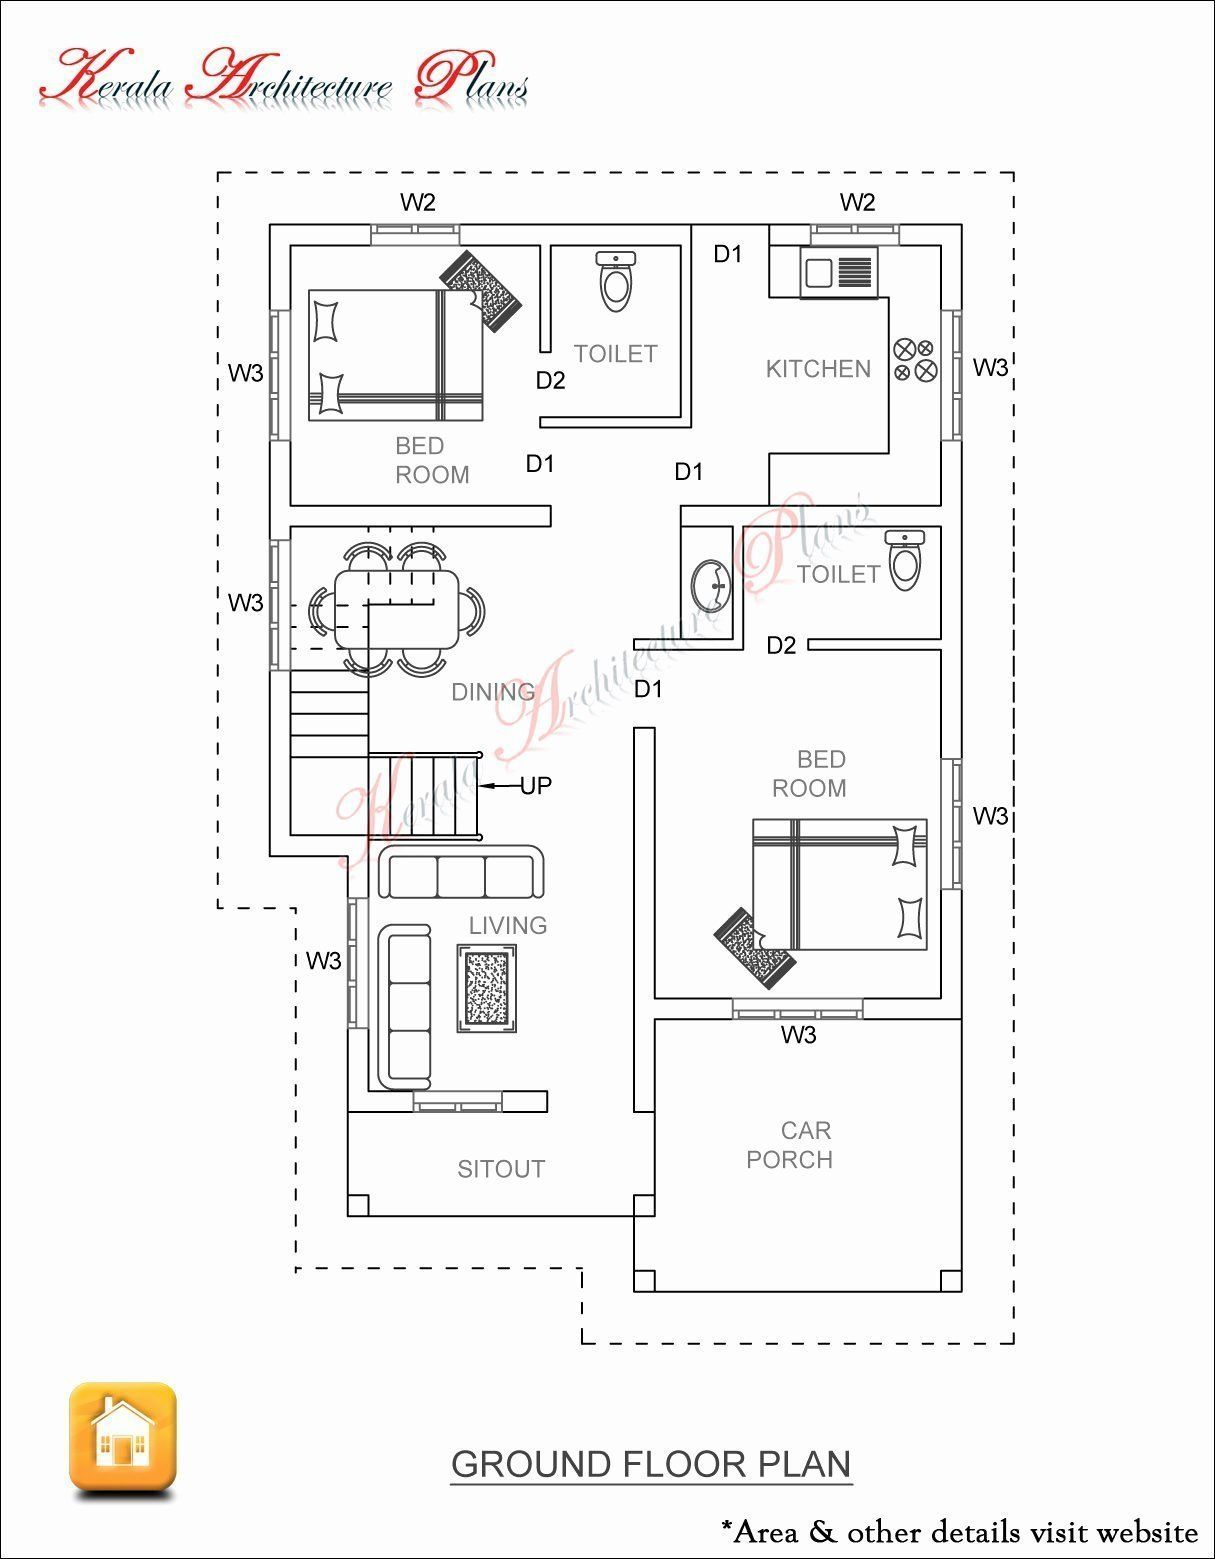 Home Design 1600 Square Feet Beautiful 3 Bed Room 1500 Square Feet House Plan In 2020 1500 Sq Ft House Small House Plans Modern House Plans